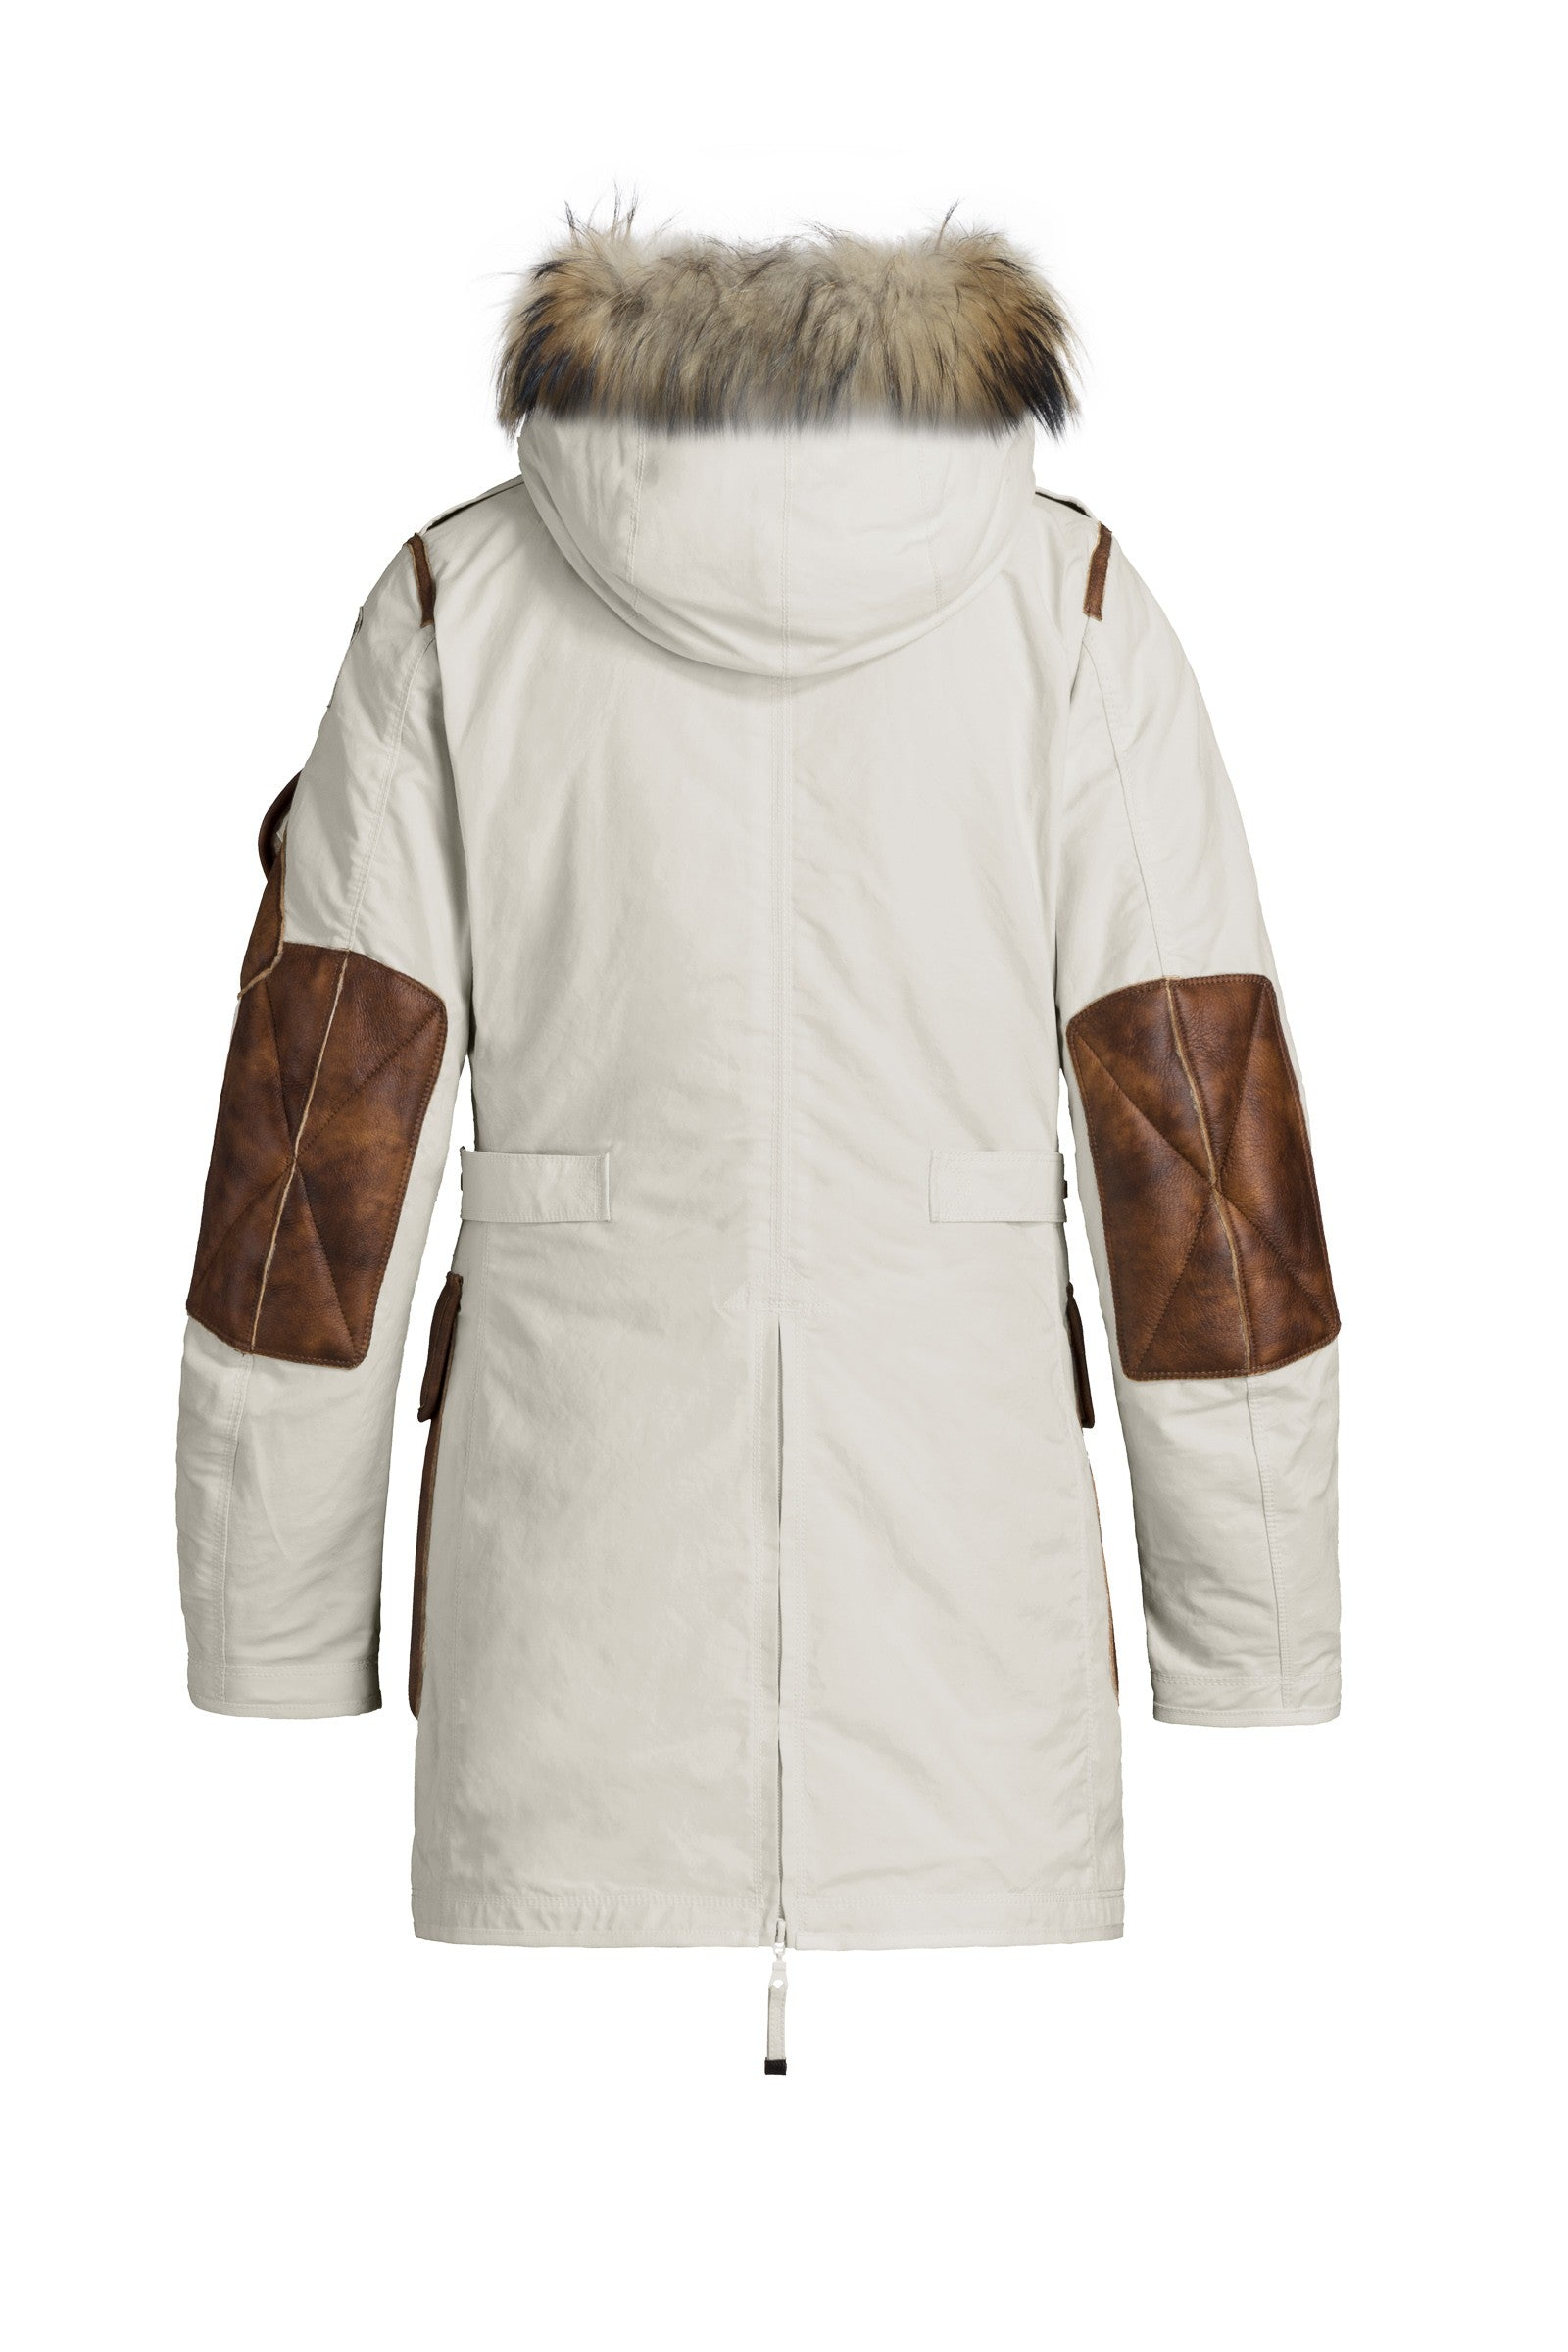 parajumpers nicole down jacket